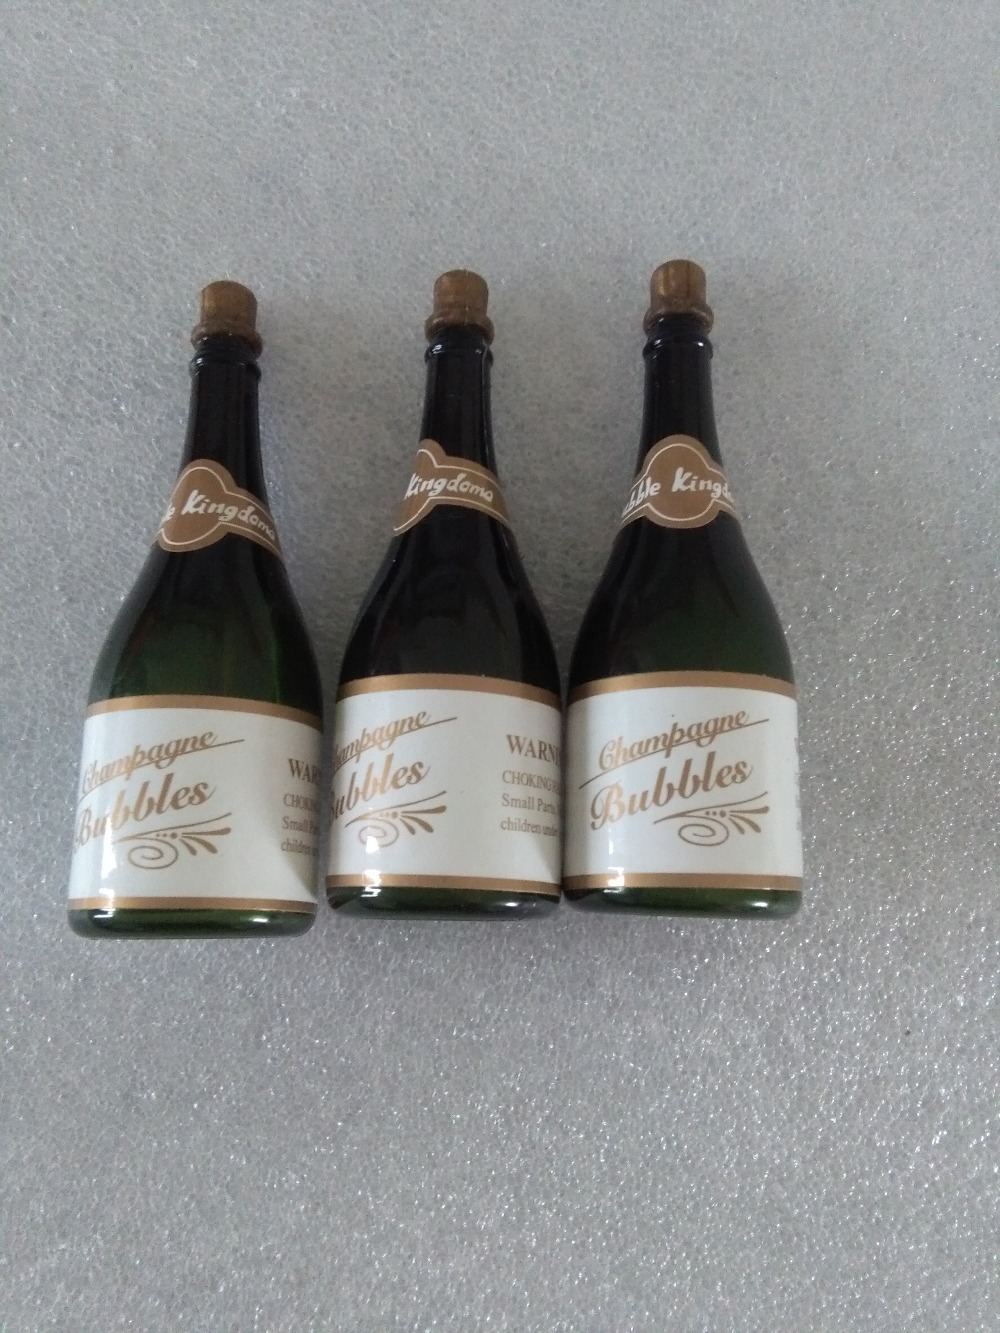 Brilliant Dhl Mini Champagne Empty Bubbles Bottle Wedding Party Jars Boxes From Home Garden On Group Dhl Mini Champagne Empty Bubbles Bottle Wedding Party Favors nice food Mini Champagne Bottles